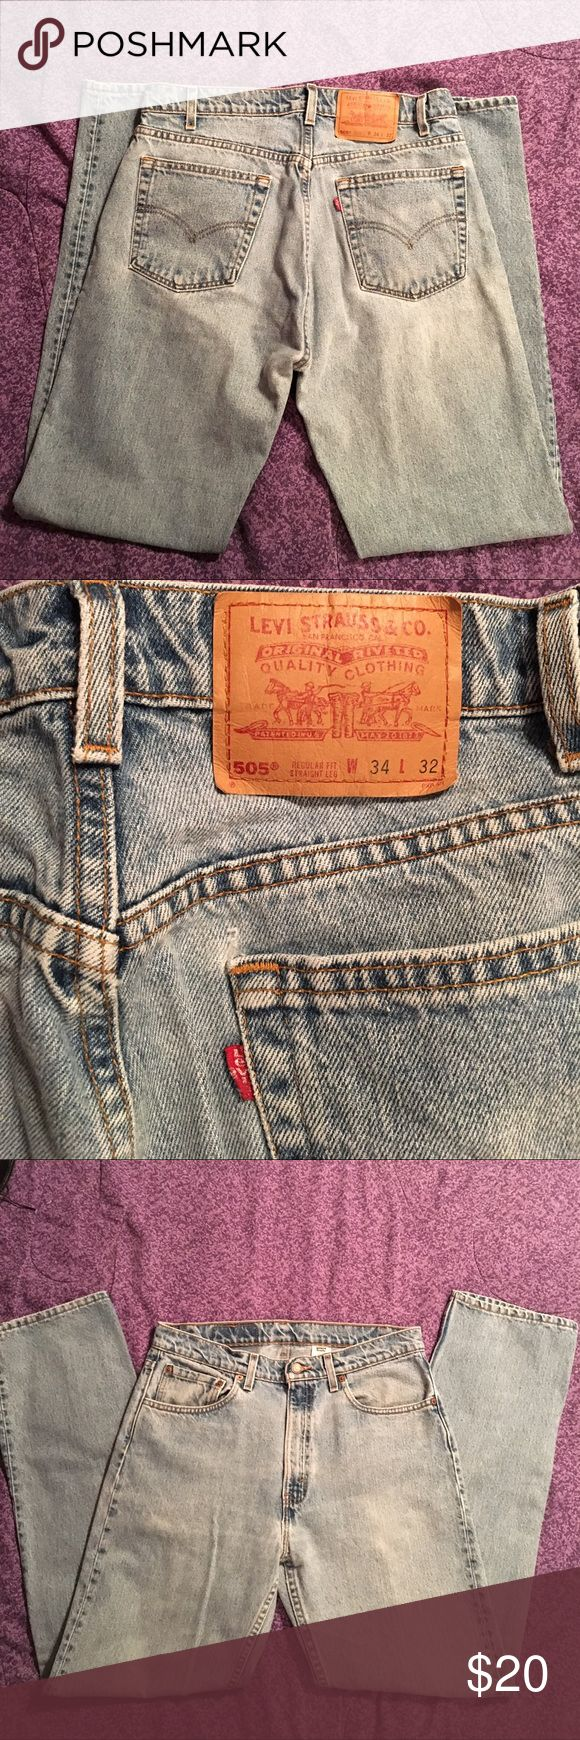 Men's Levi's 505 34W x 32L jeans Men's Levi 505 34W x 32L regular fit, straight leg, 100% cotton jeans.  Gently worn. Excellent used condition. Non smoking environment. Pet friendly household. Levi's Jeans Straight